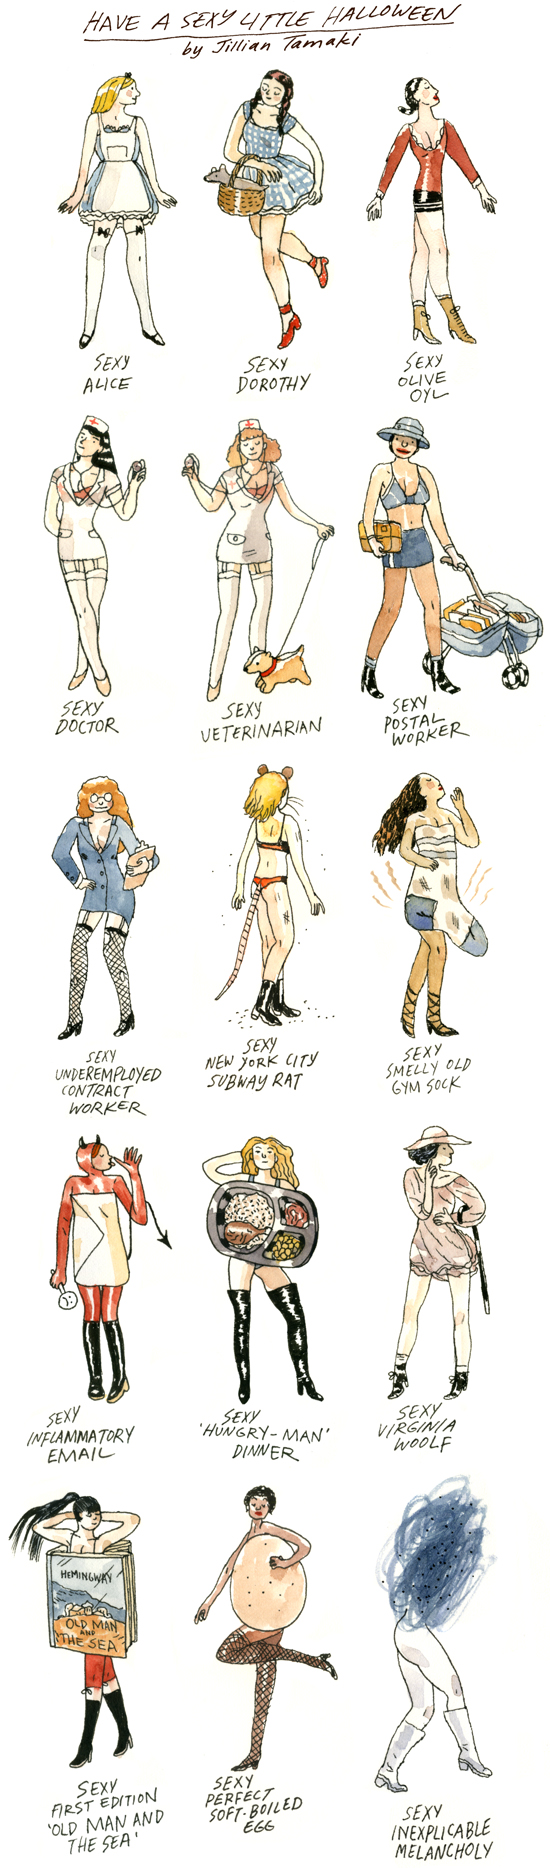 sexyhalloween Have A Sexy Halloween: Artist Lampoons The Fashion For a Slutty Costume